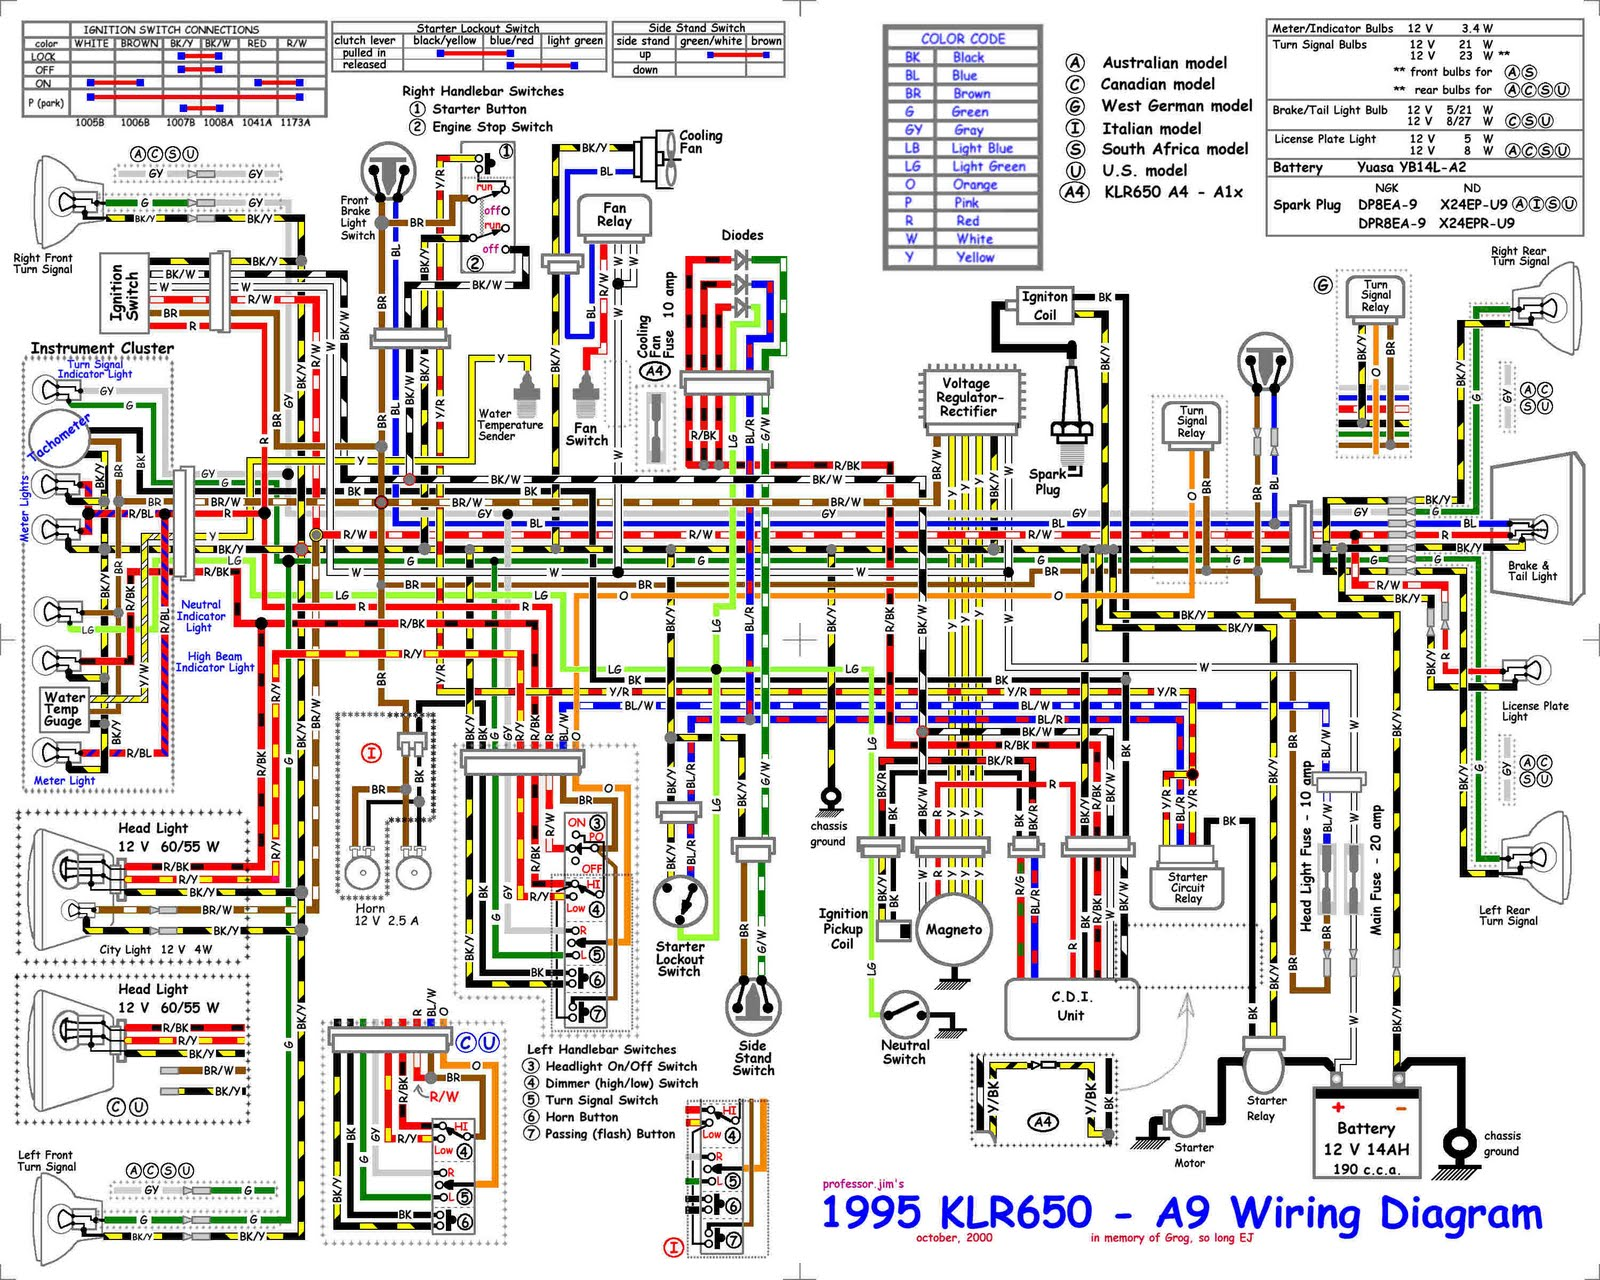 1974 monte carlo wiring diagram 2001 monte carlo wiring diagram 2001 impala radio wiring diagram  at honlapkeszites.co